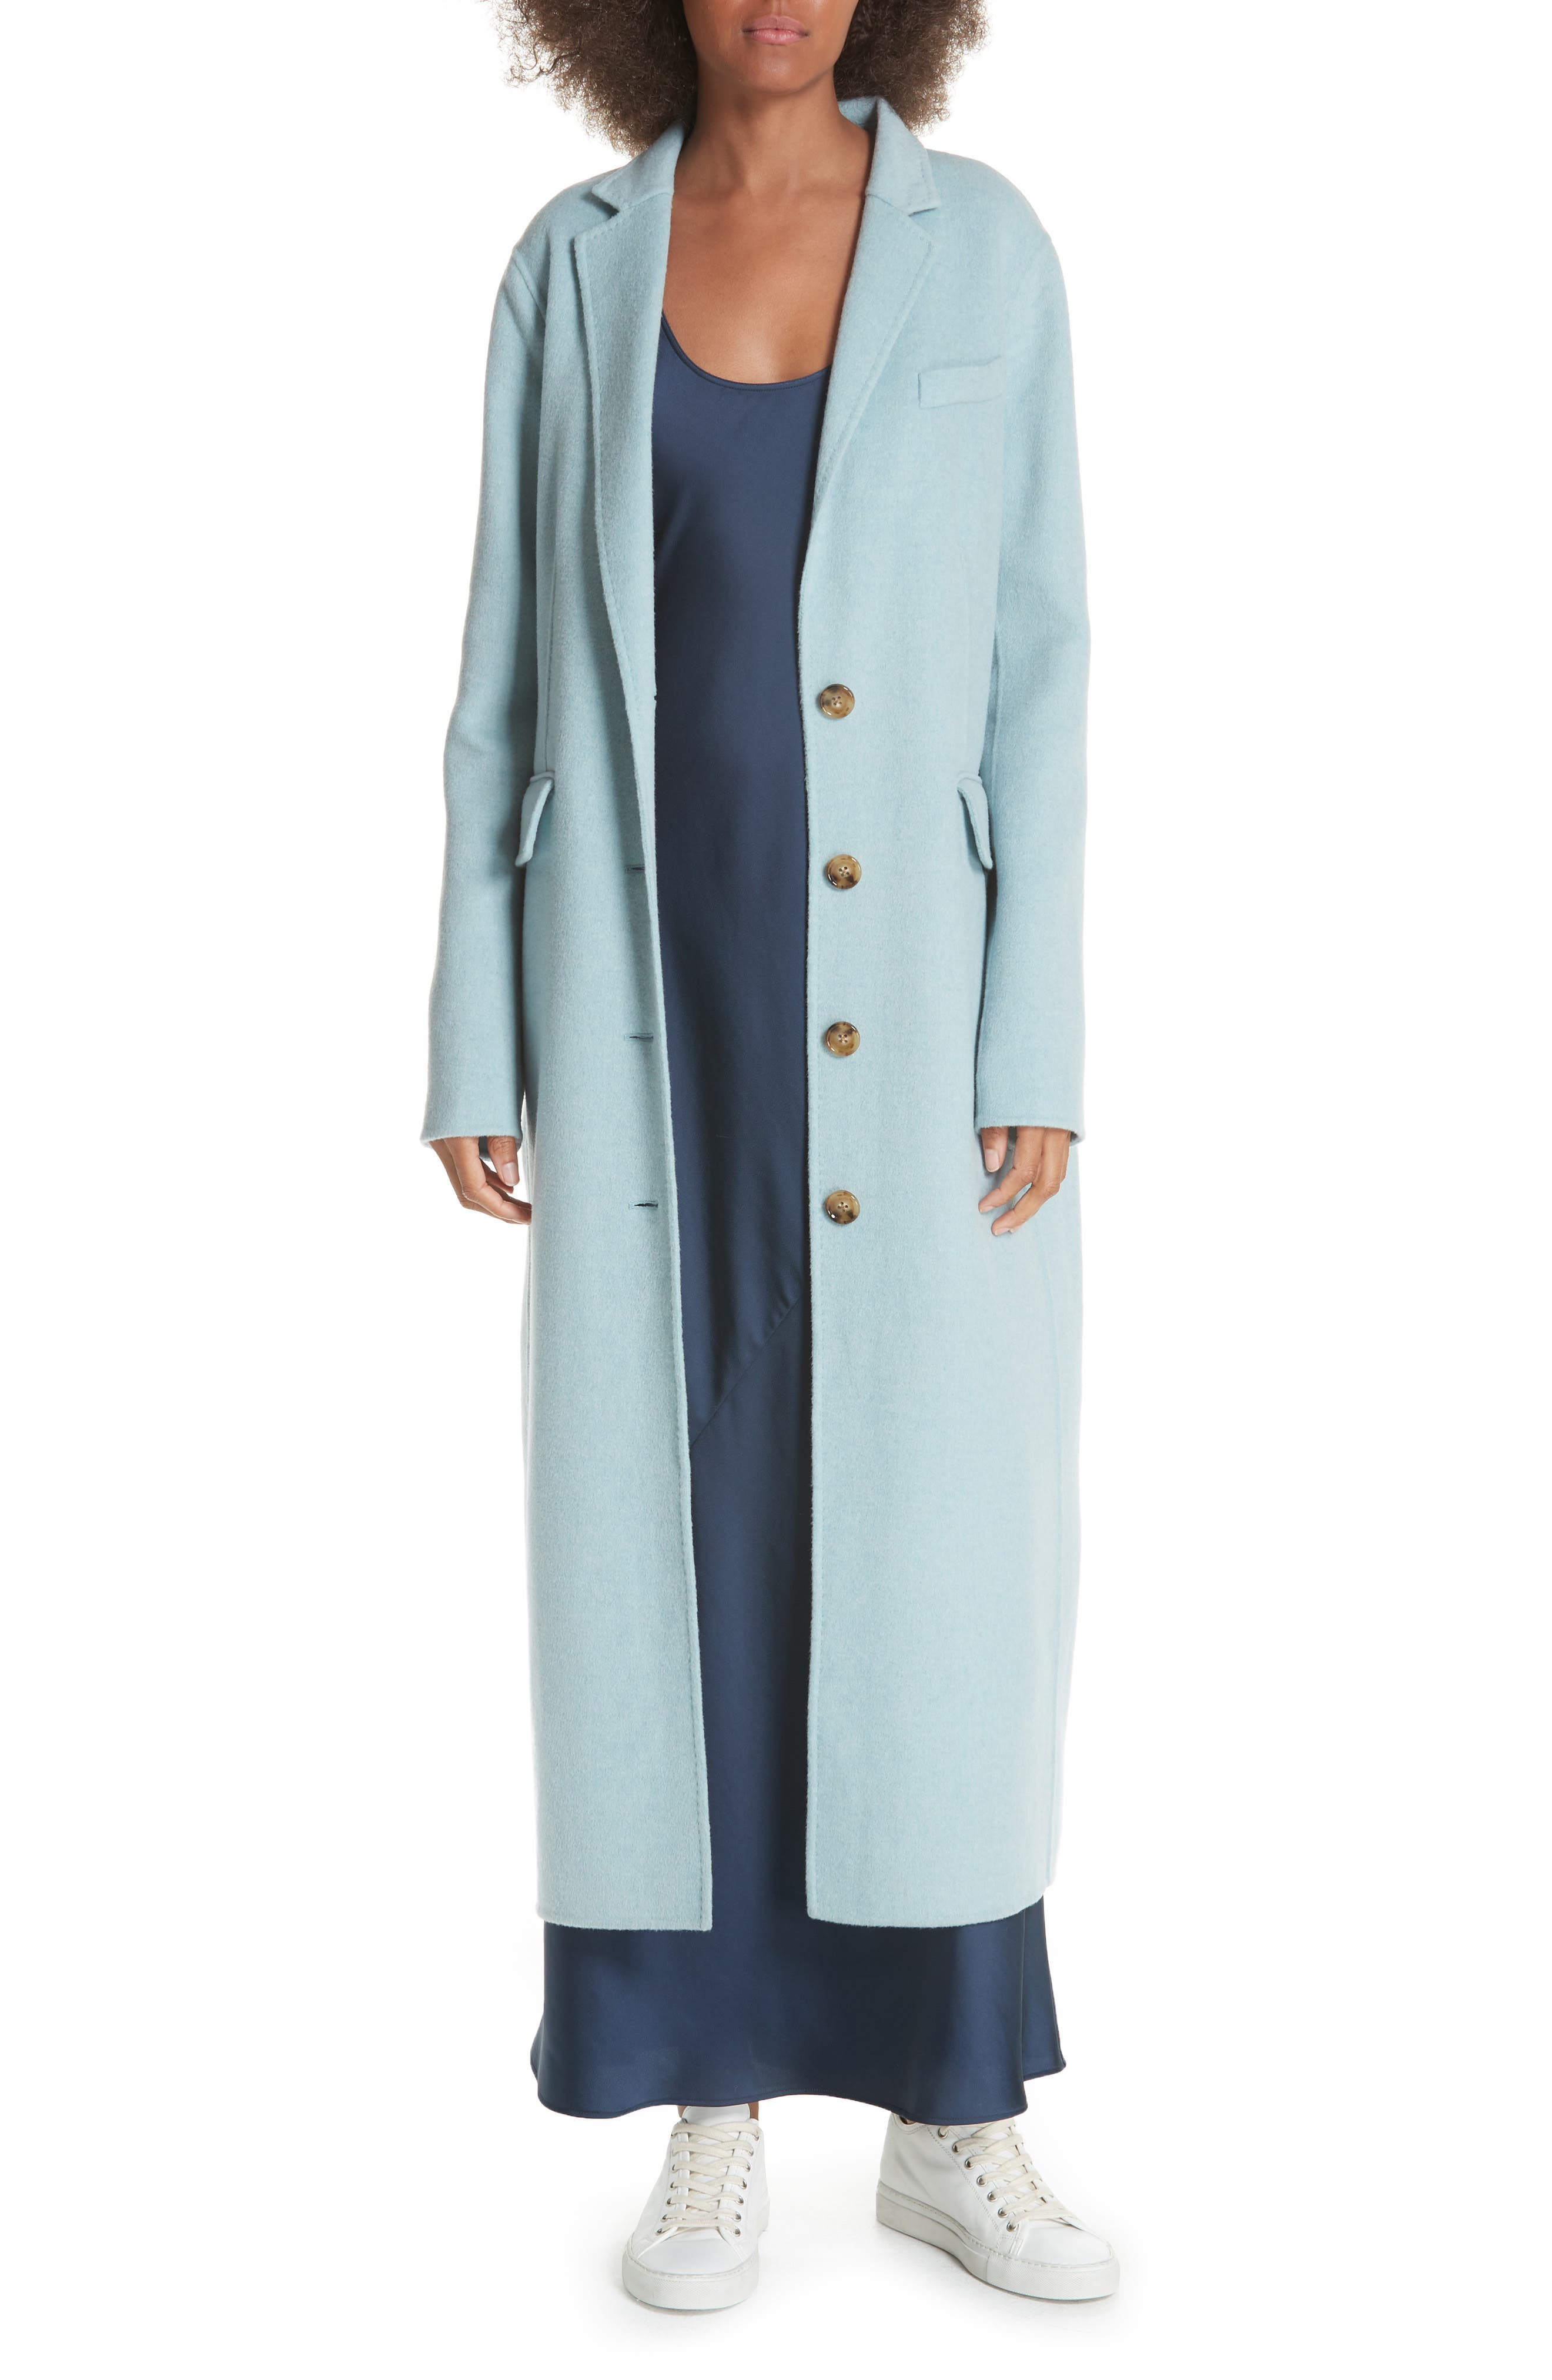 ELIZABETH AND JAMES,                             Russell Wool Blend Coat,                             Alternate thumbnail 7, color,                             400